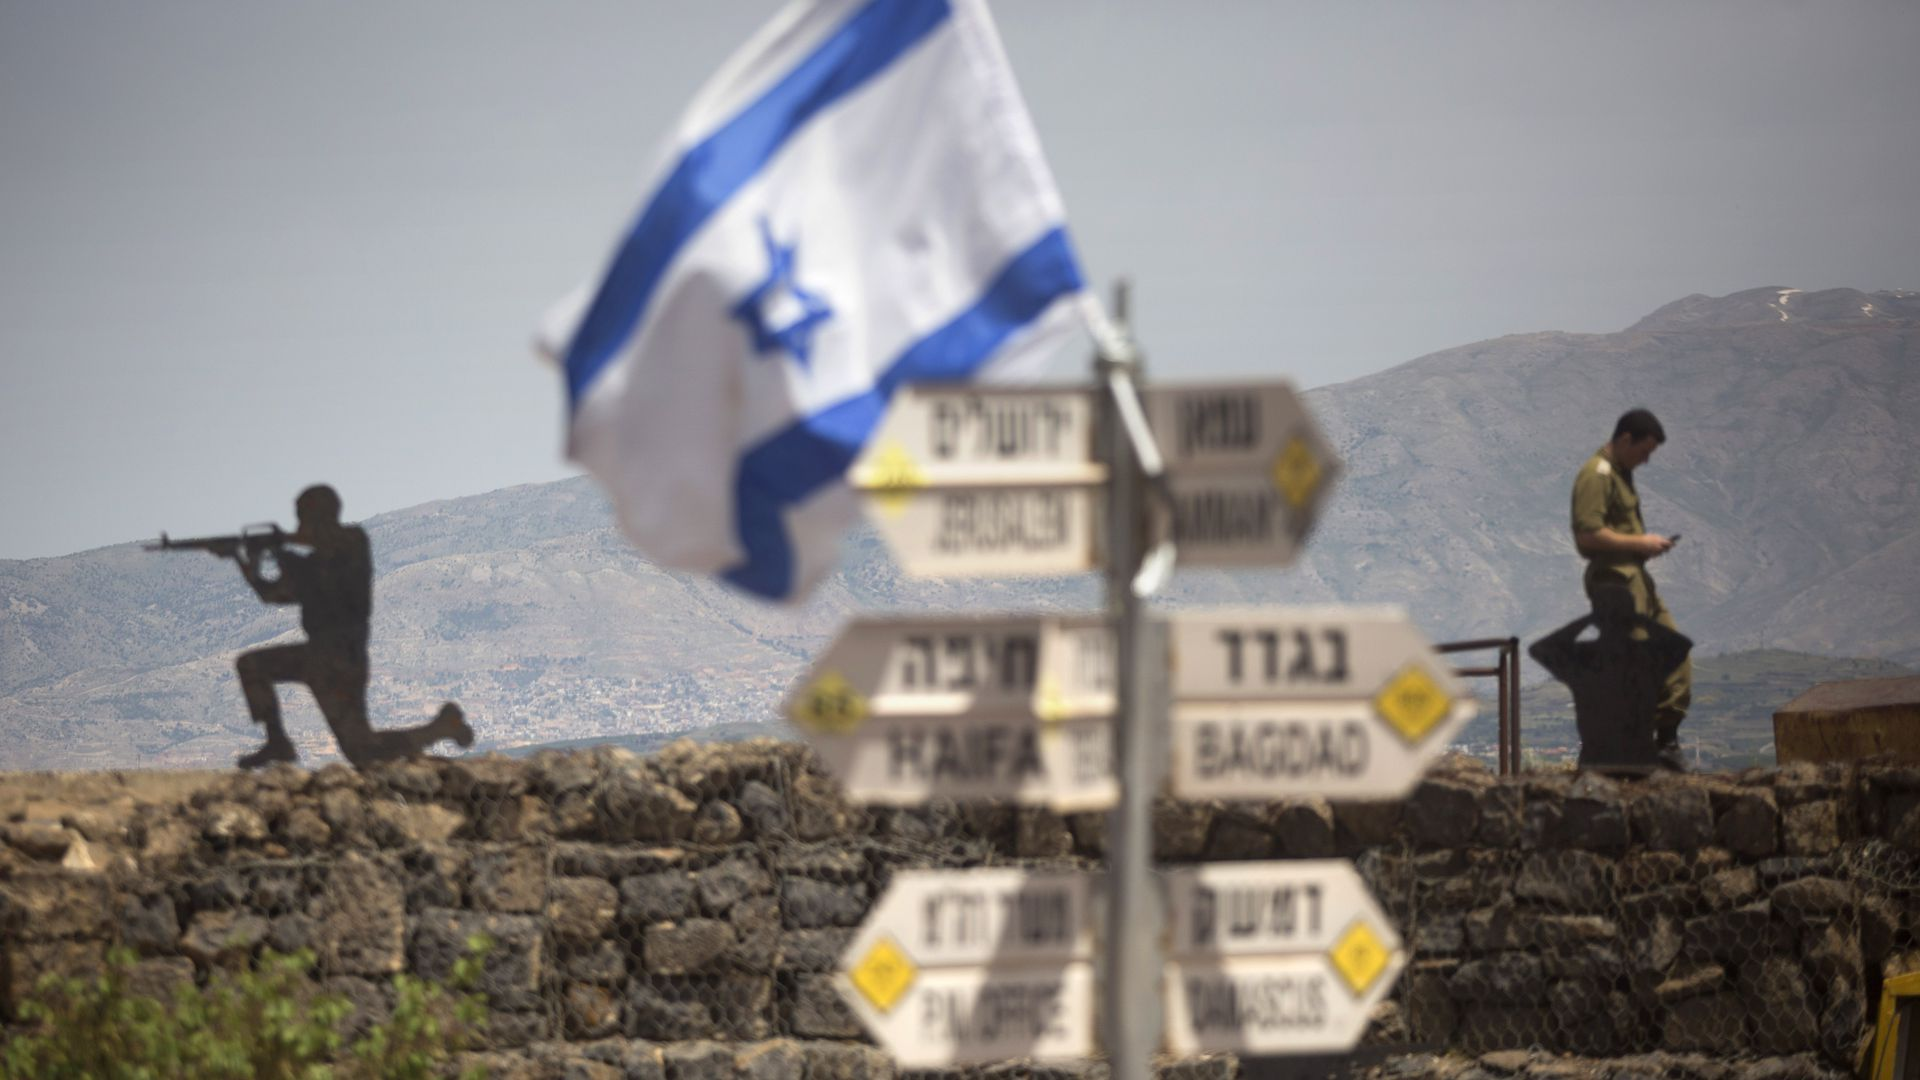 Israeli soldier is seen next to a signs pointing out distance to different cities on Mount Bental next to the Syrian border on May 10, 2018 in the Israeli-annexed Golan Heights.